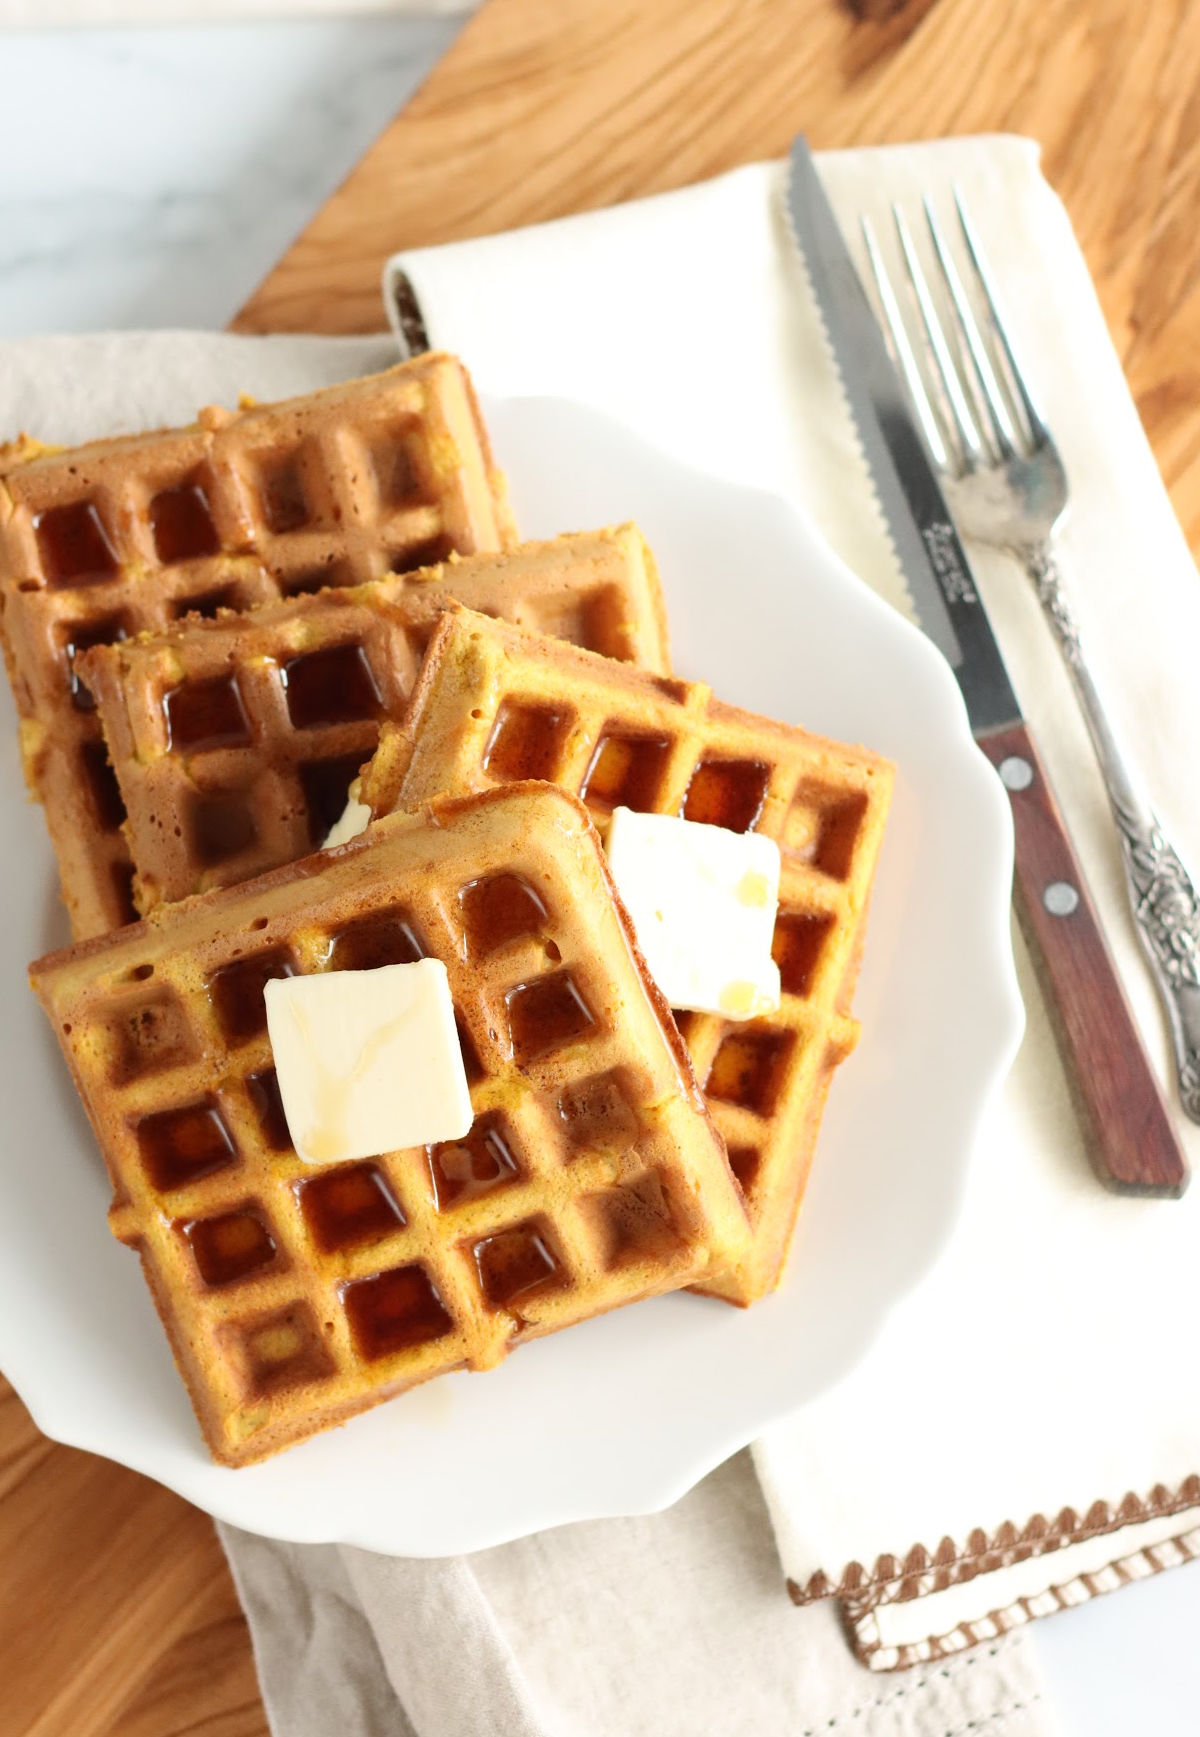 Square waffles stacked on each other, whipped cream, maple syrup, and sprinkled with cinnamon.